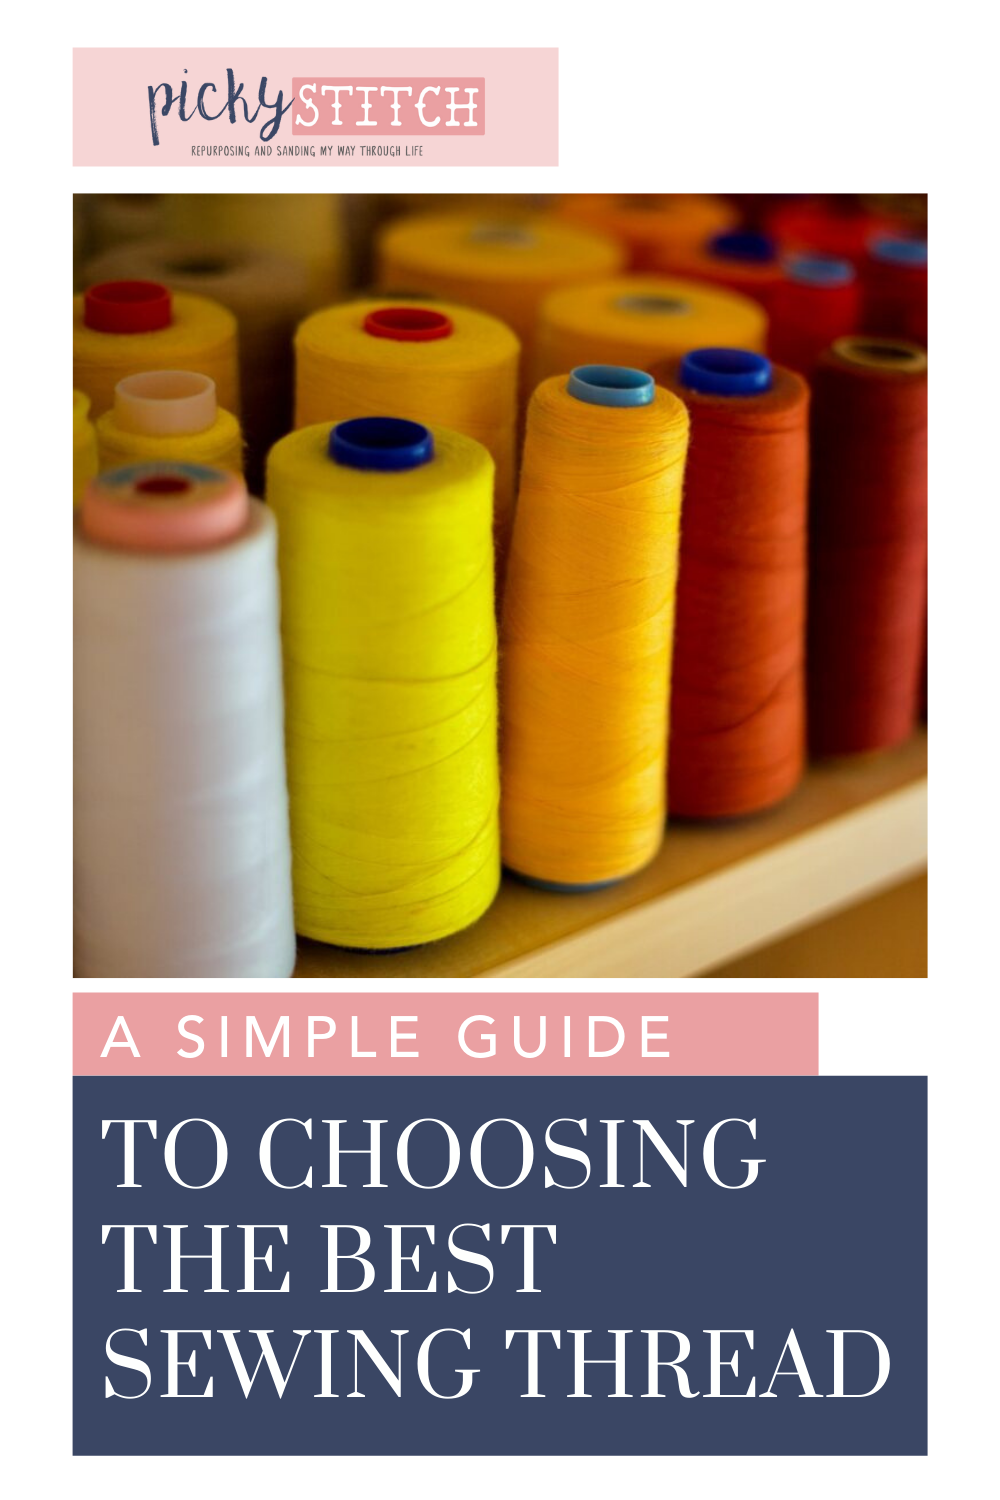 Pickystitch.com is the mecca of crafts! Find project ideas, tips, and more! Get started by learning the different types of threads to use for your sewing projects!